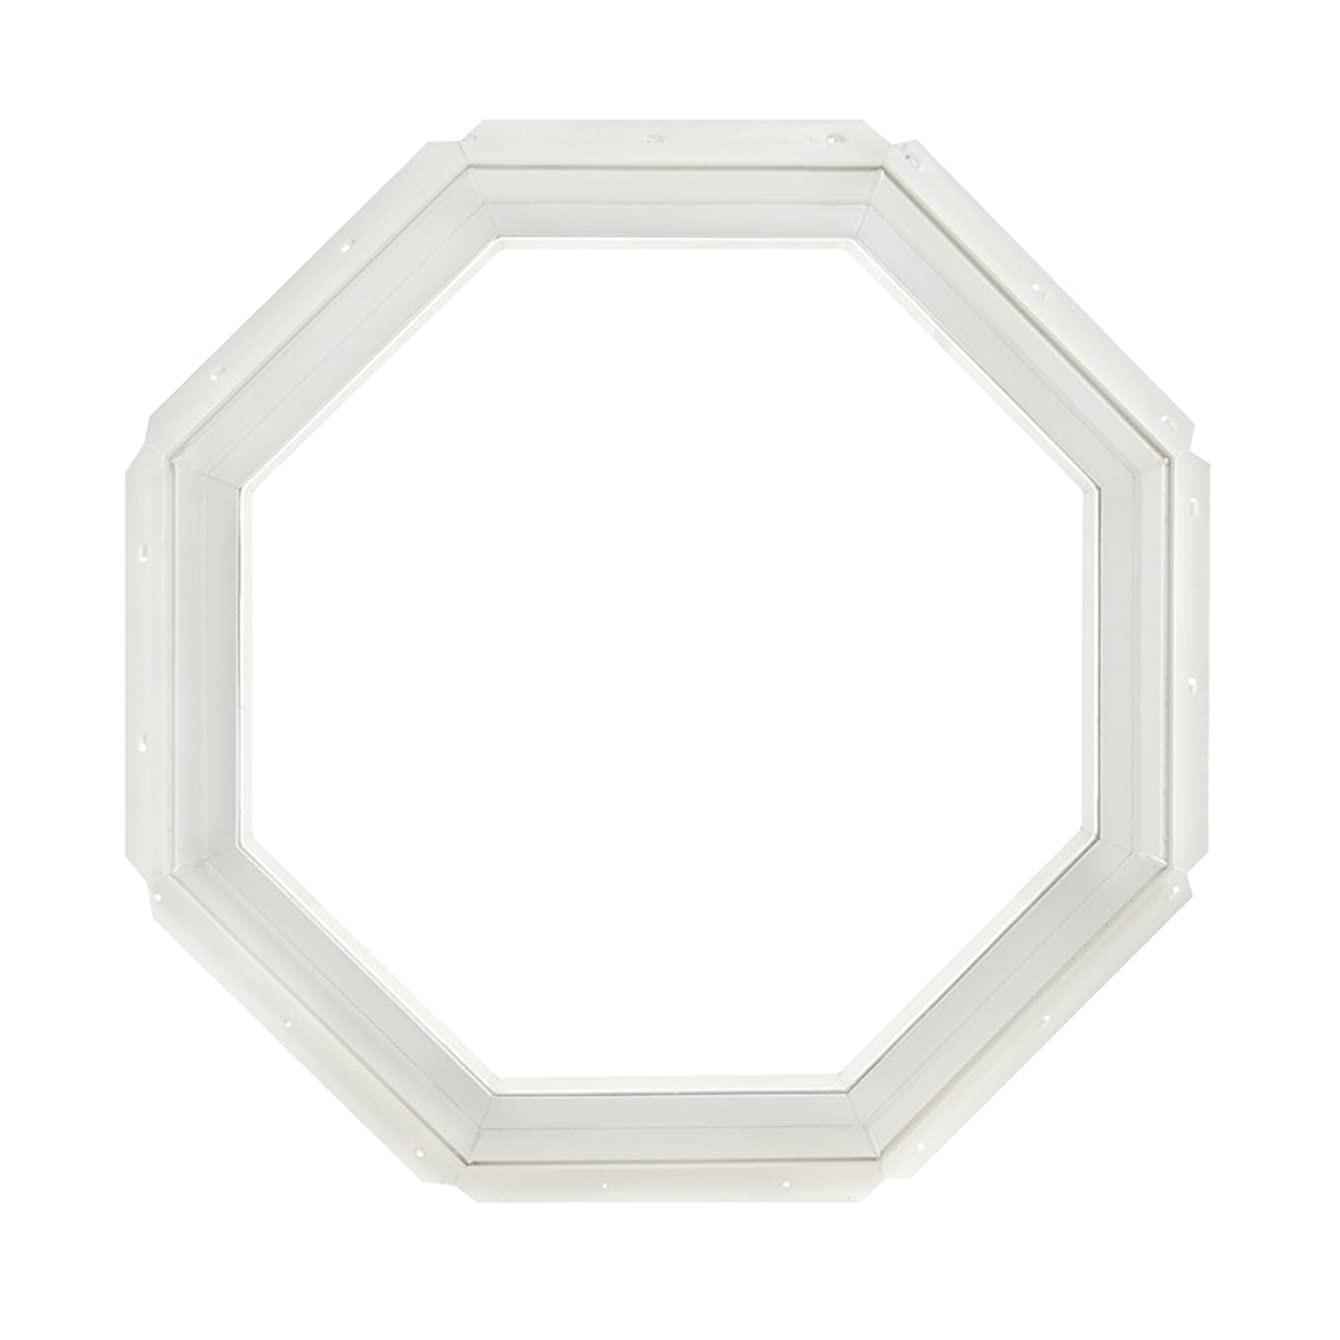 Park Ridge Vinyl Octagon Fixed Window with Insulated Clear Glass, 22